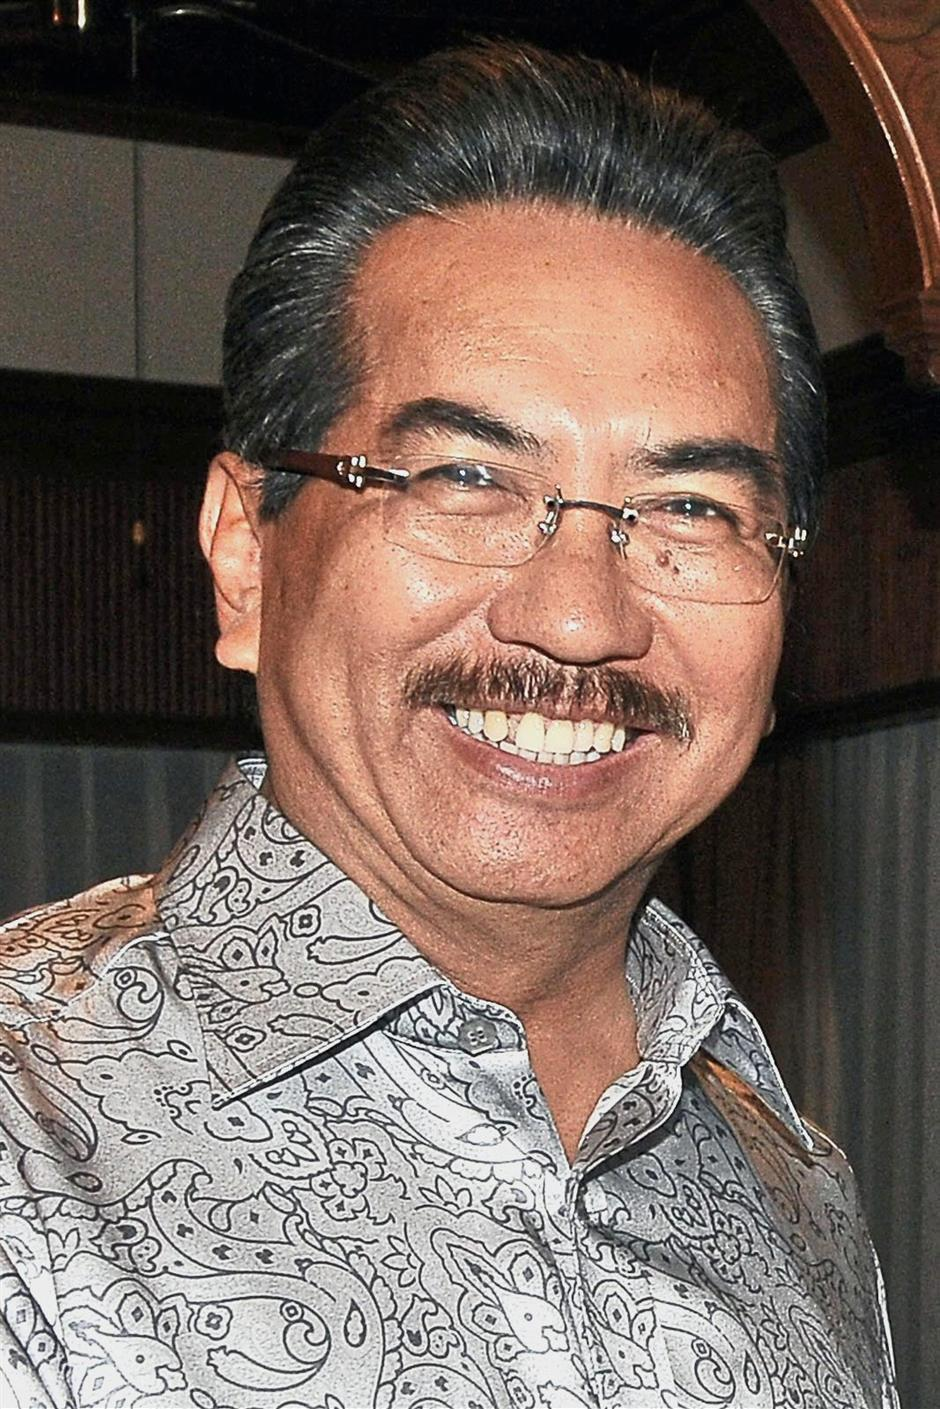 Musa: Seems confident in the face of Warisan threat.